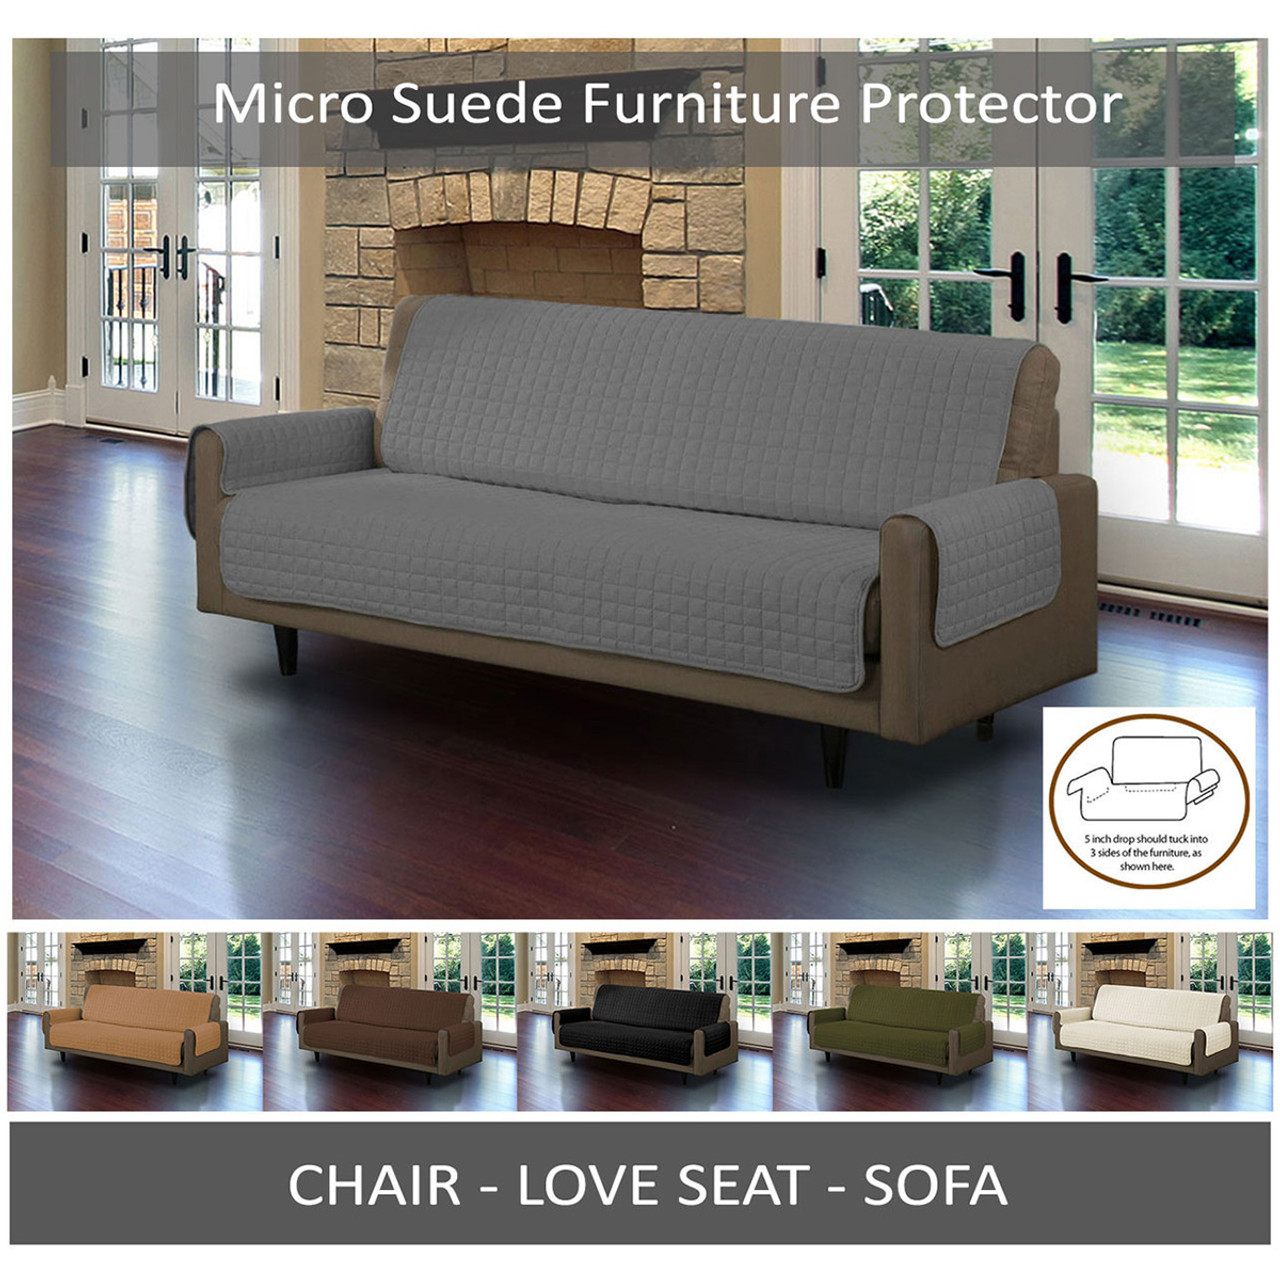 furniture protector cover quilted microsuede pet dog couch sofa with rh linenstore com sofa furniture protector walmart sofa furniture protector slipcover